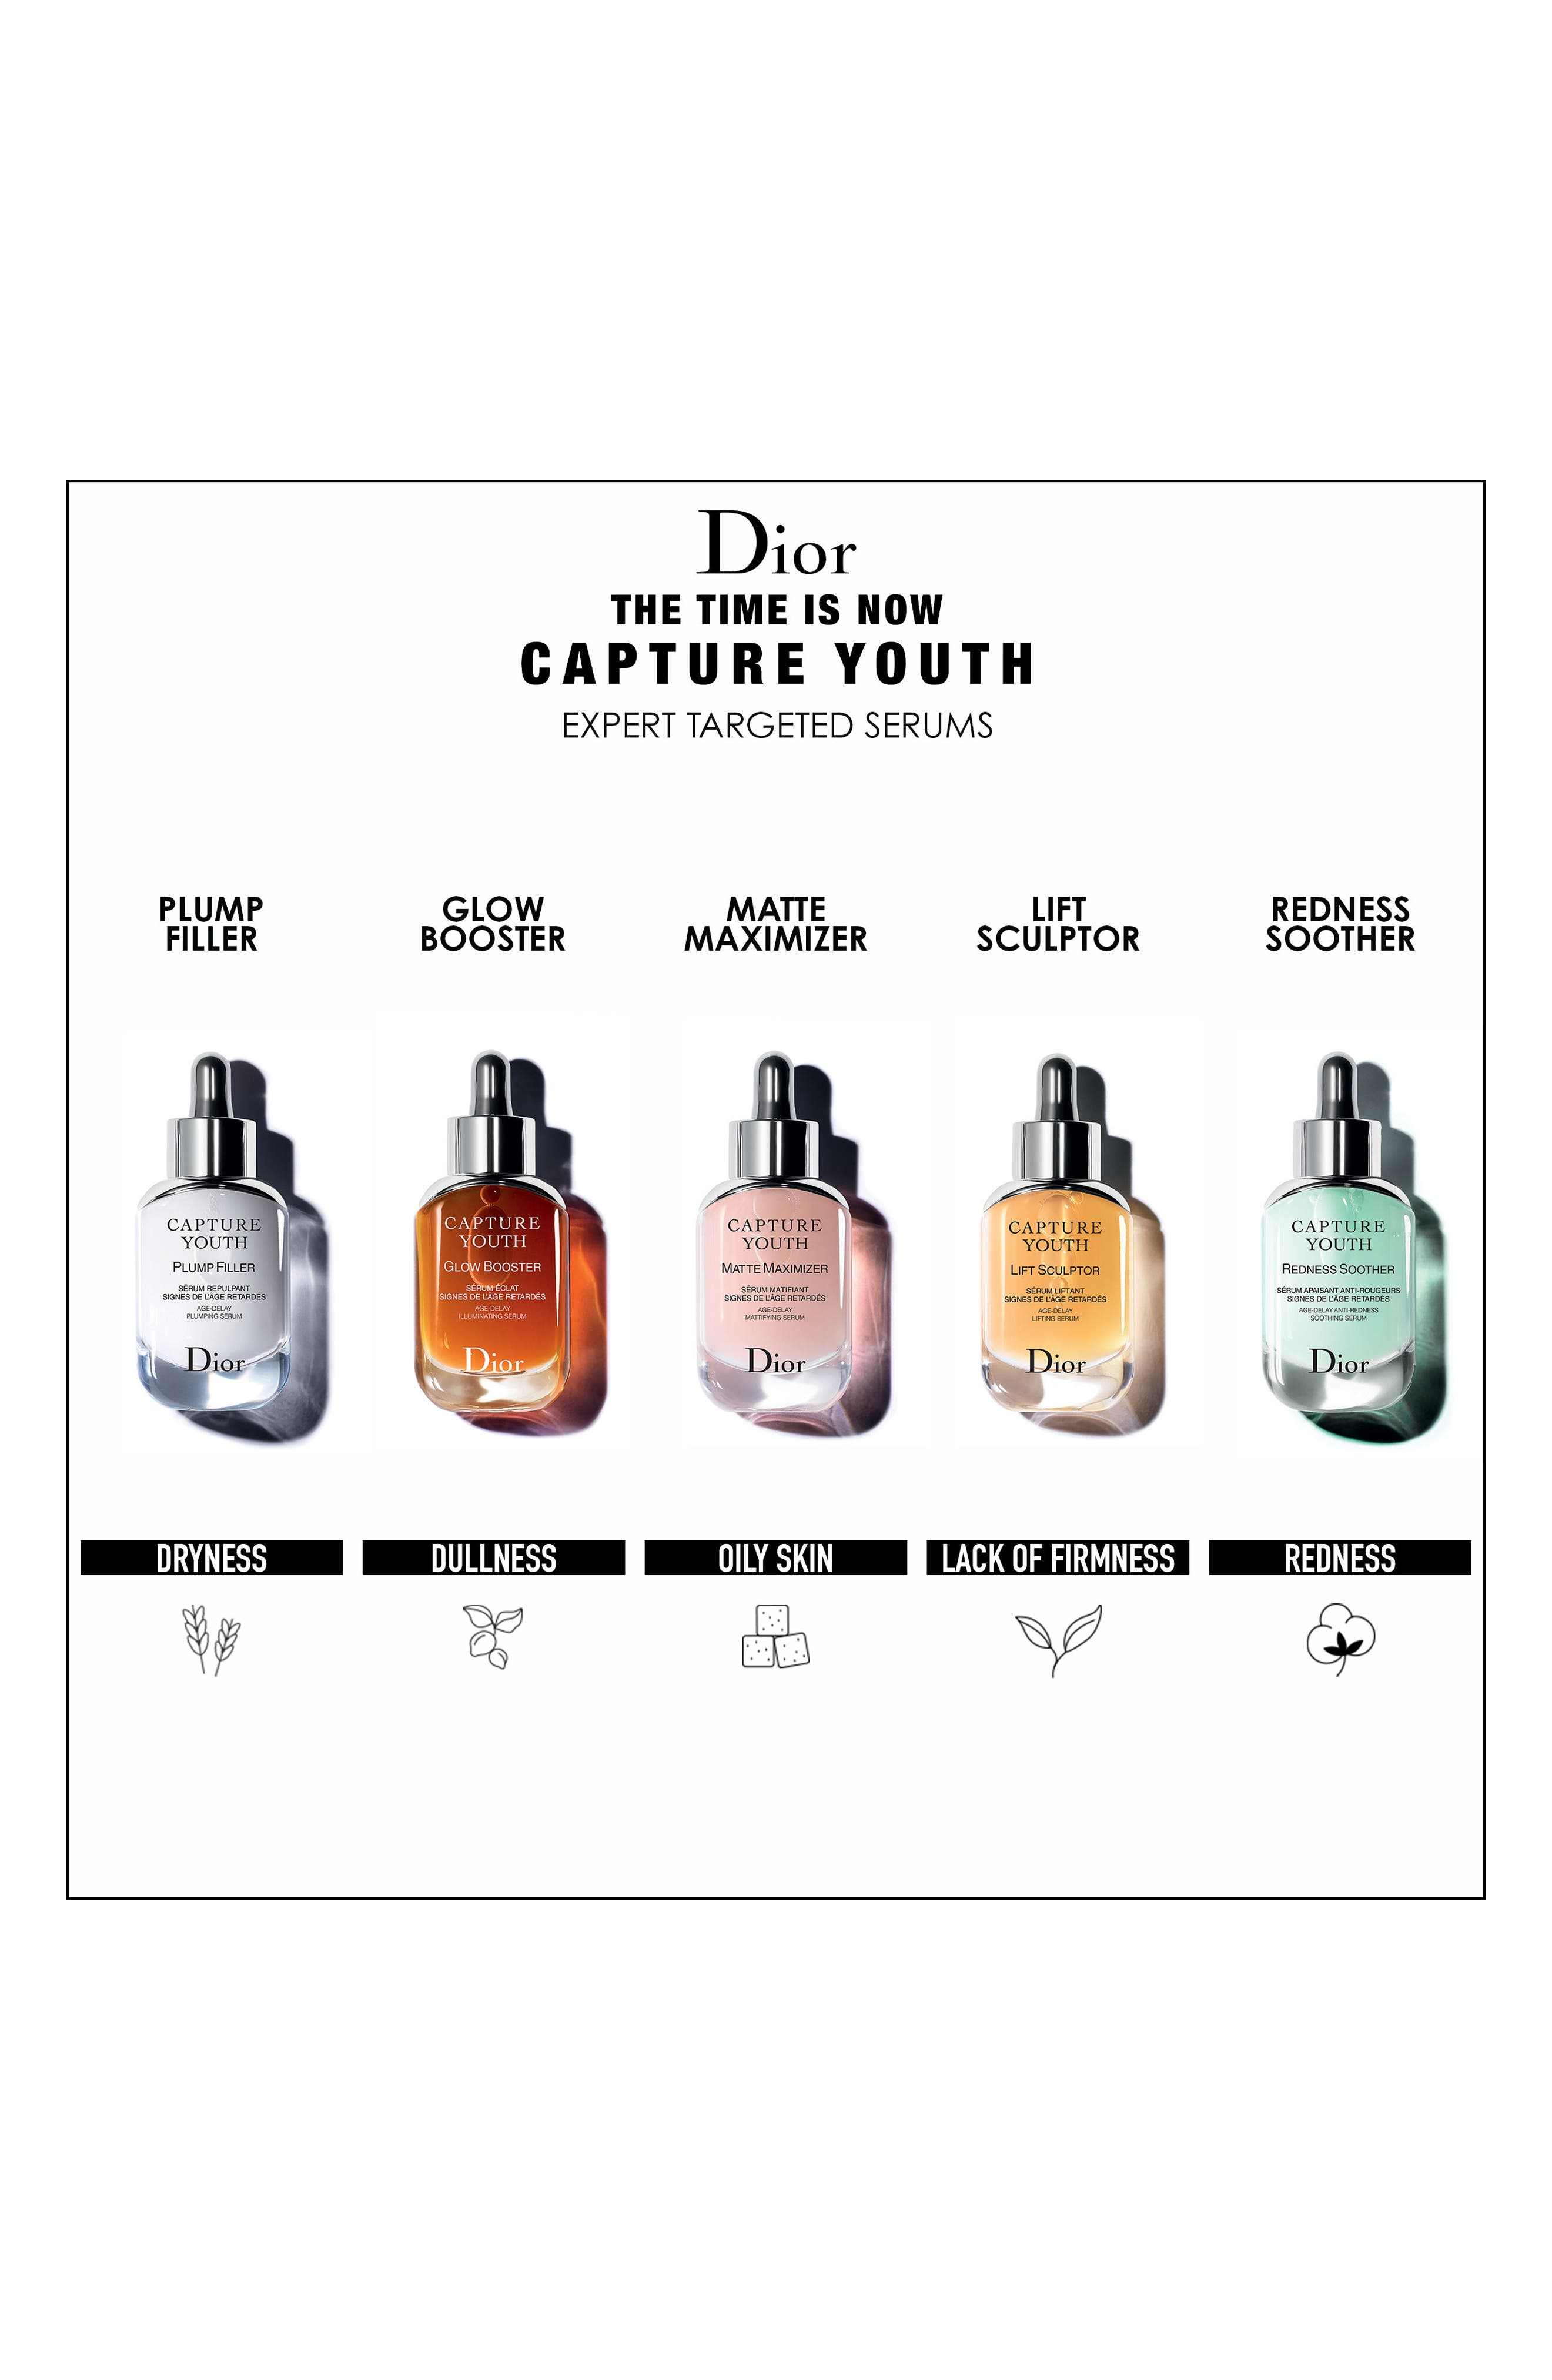 Capture Youth Matte Maximizer Age-Delay Mattifying Serum,                             Alternate thumbnail 5, color,                             No Color